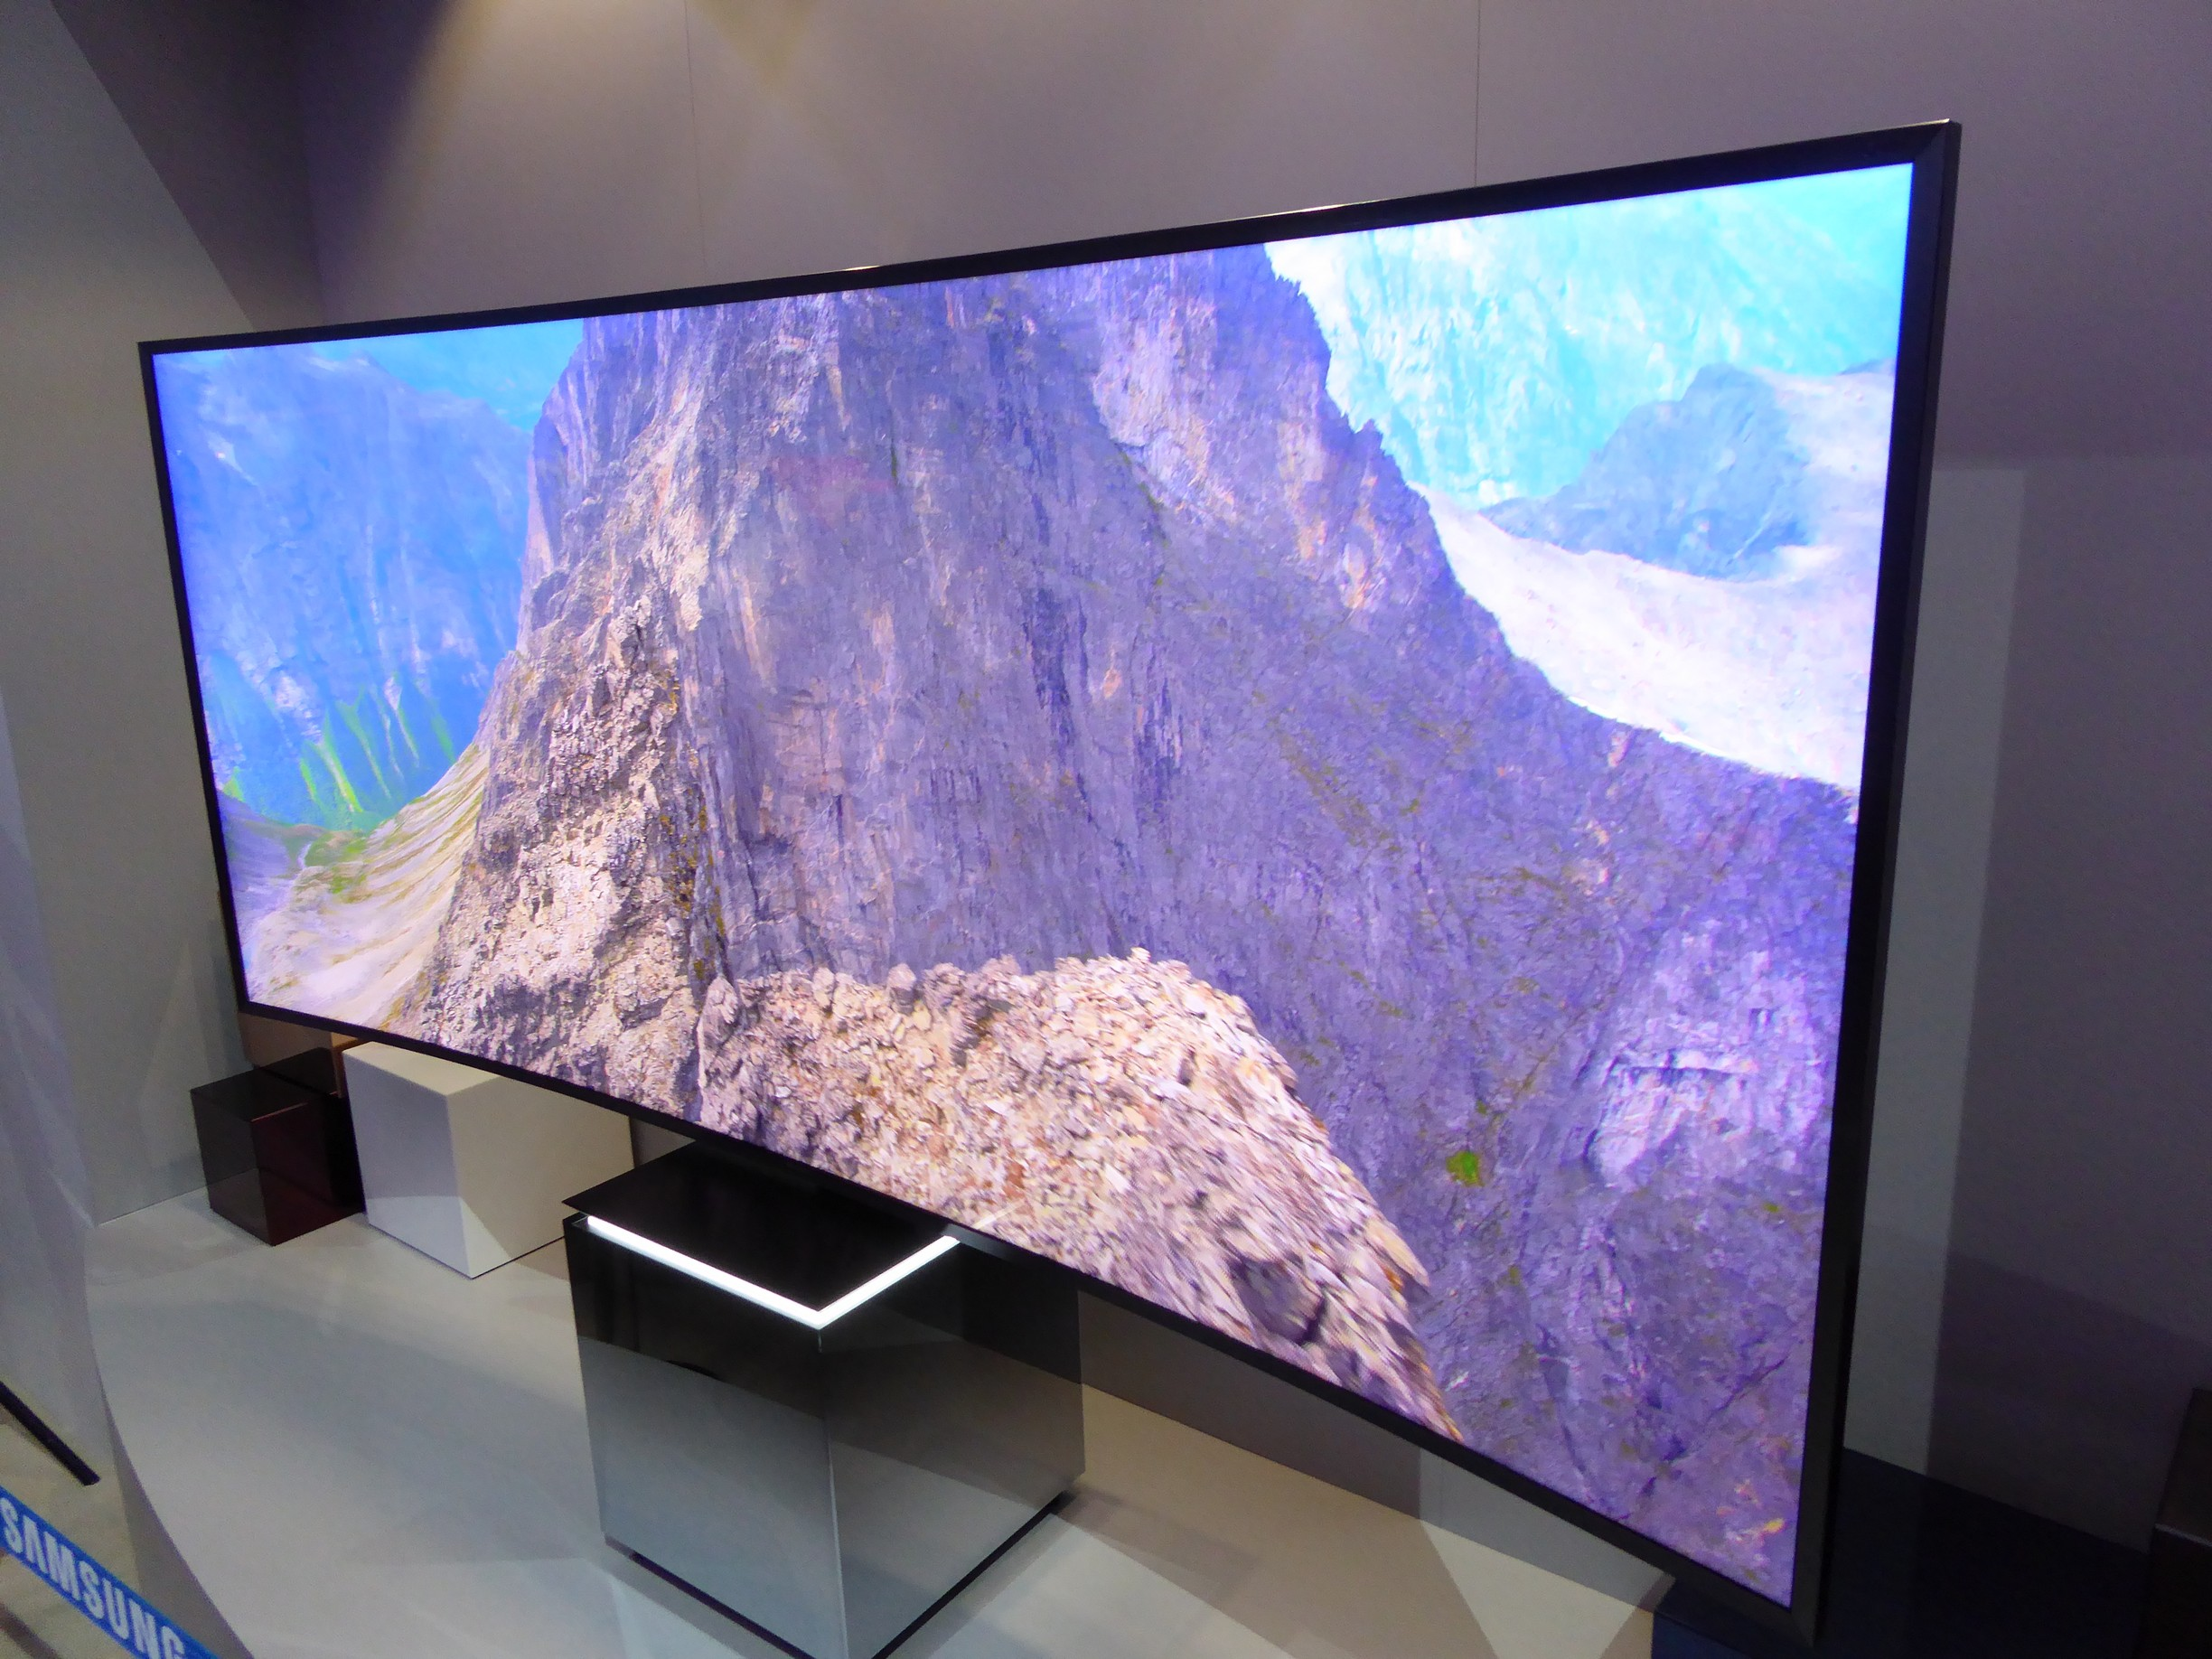 Samsung 85S9W ultra-widescreen curved TV